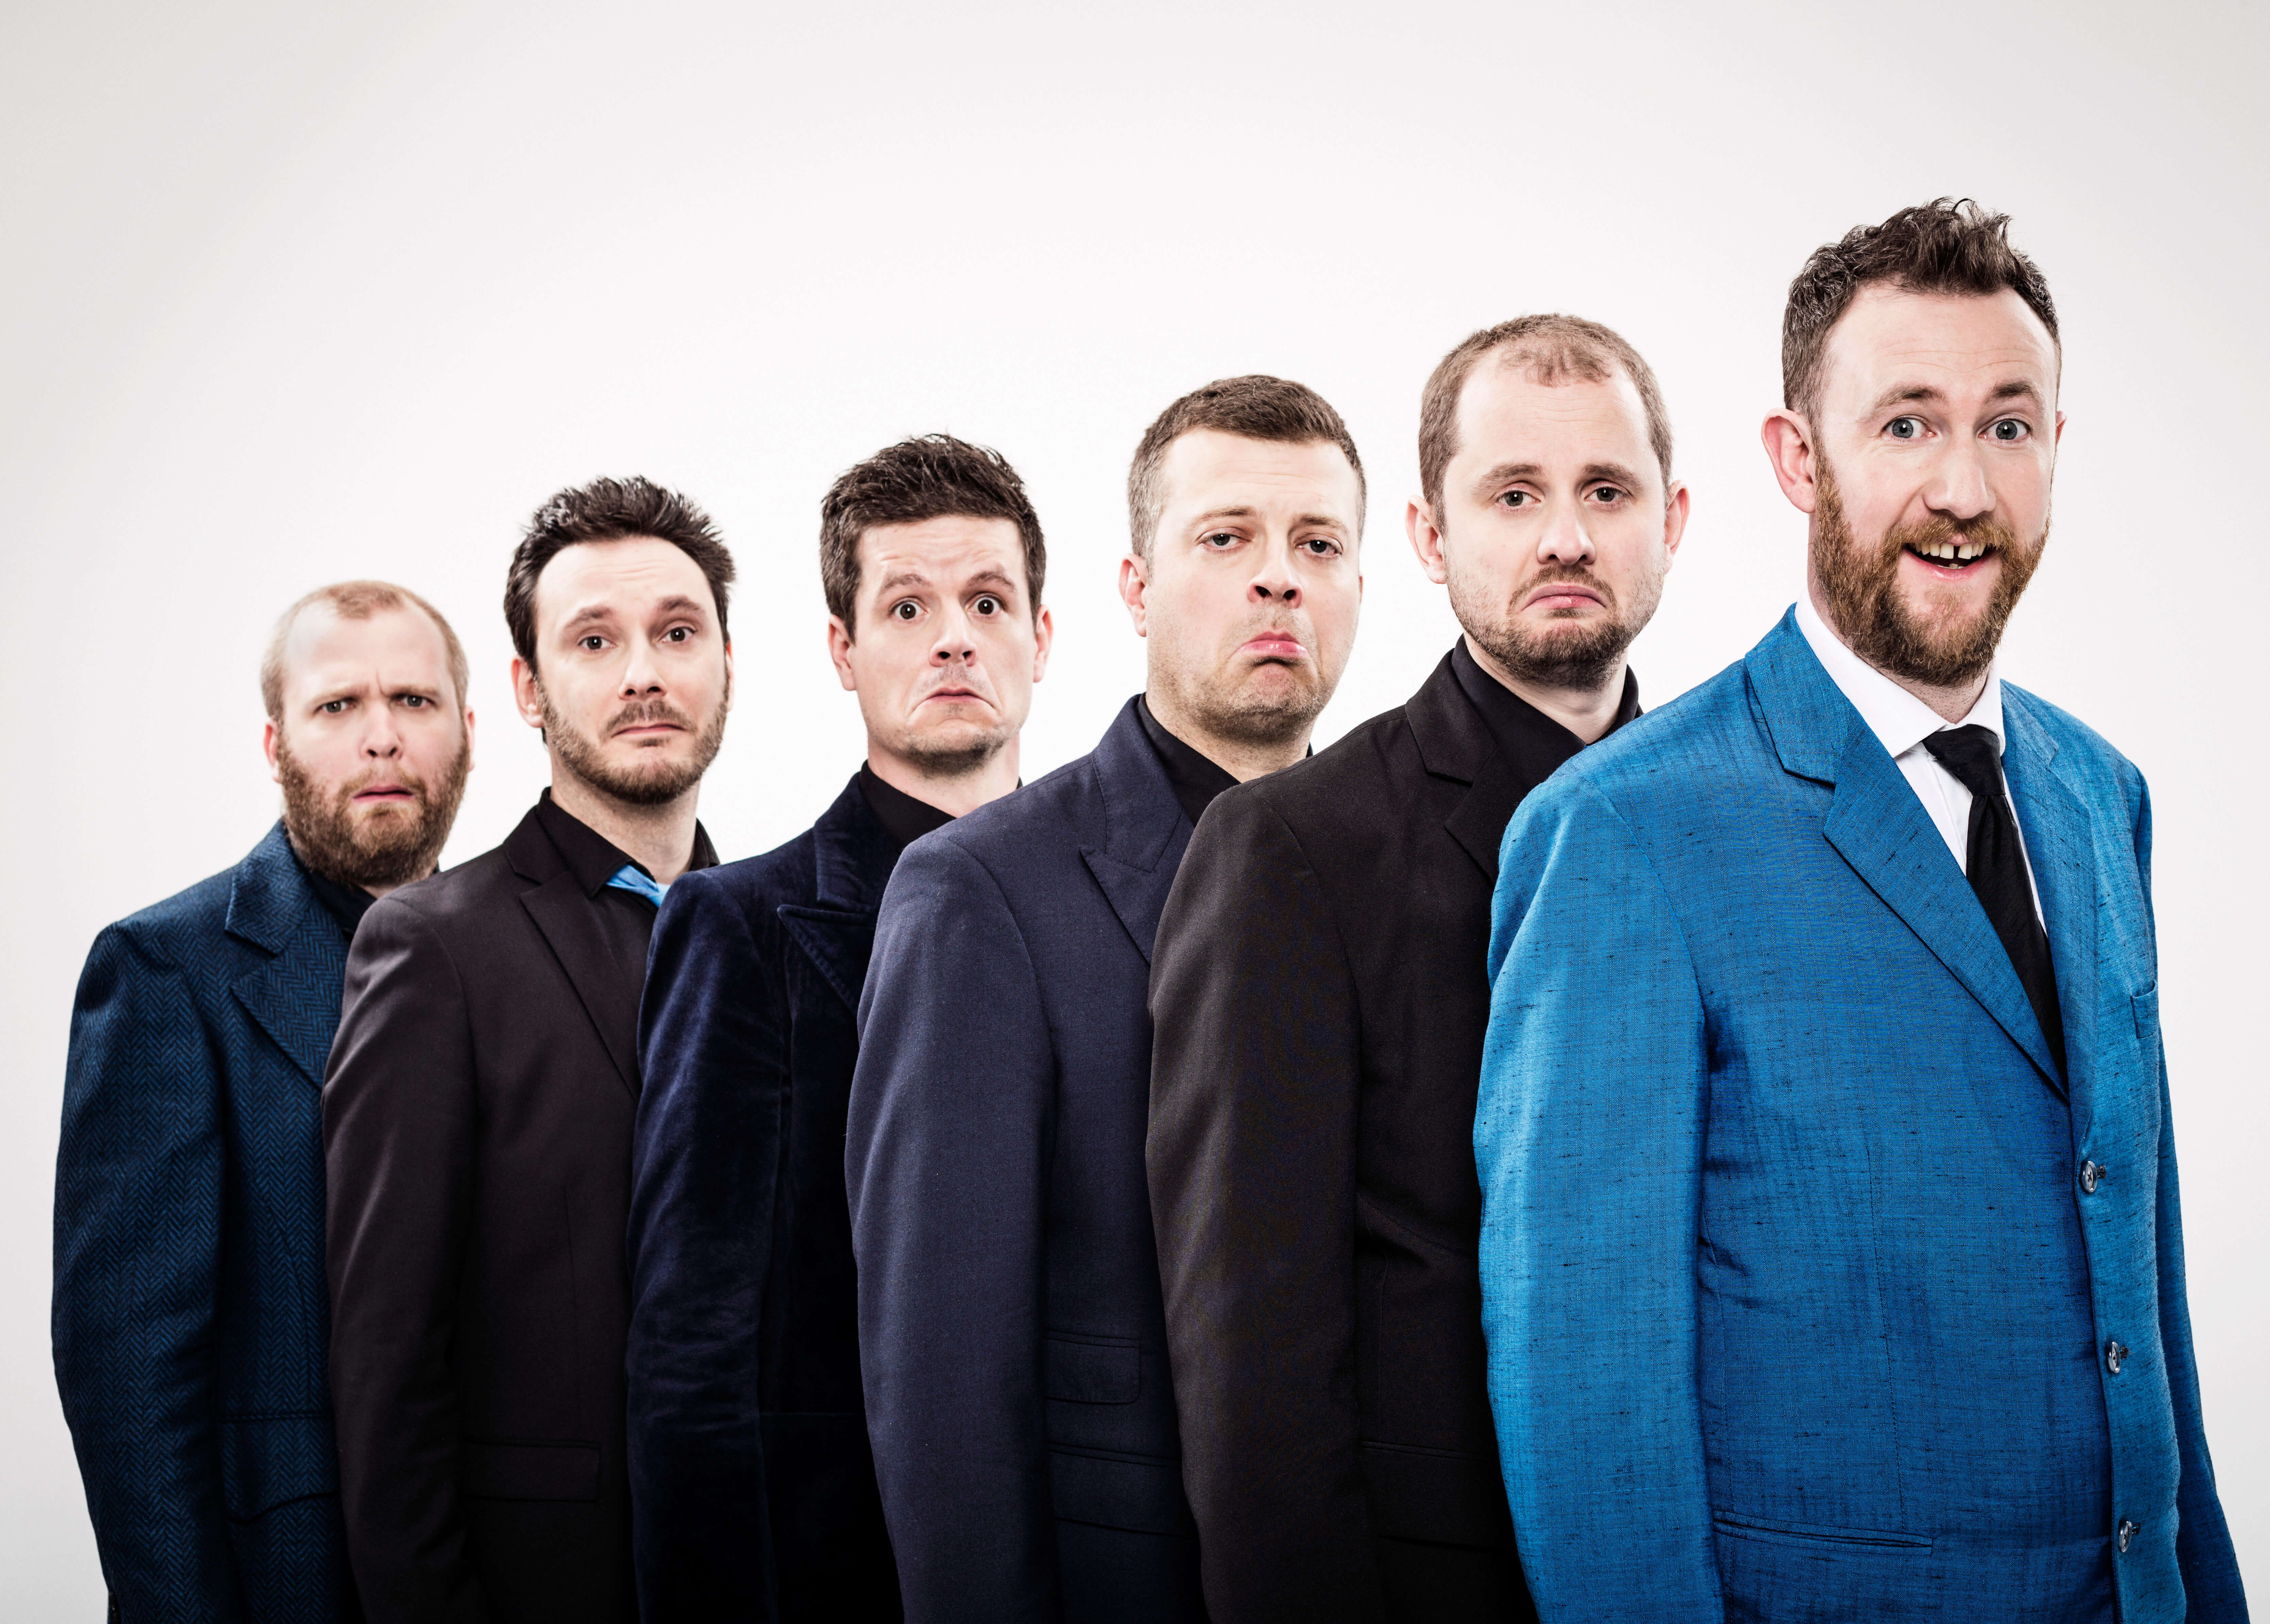 Horne Section to bring music and mirth to Dudley